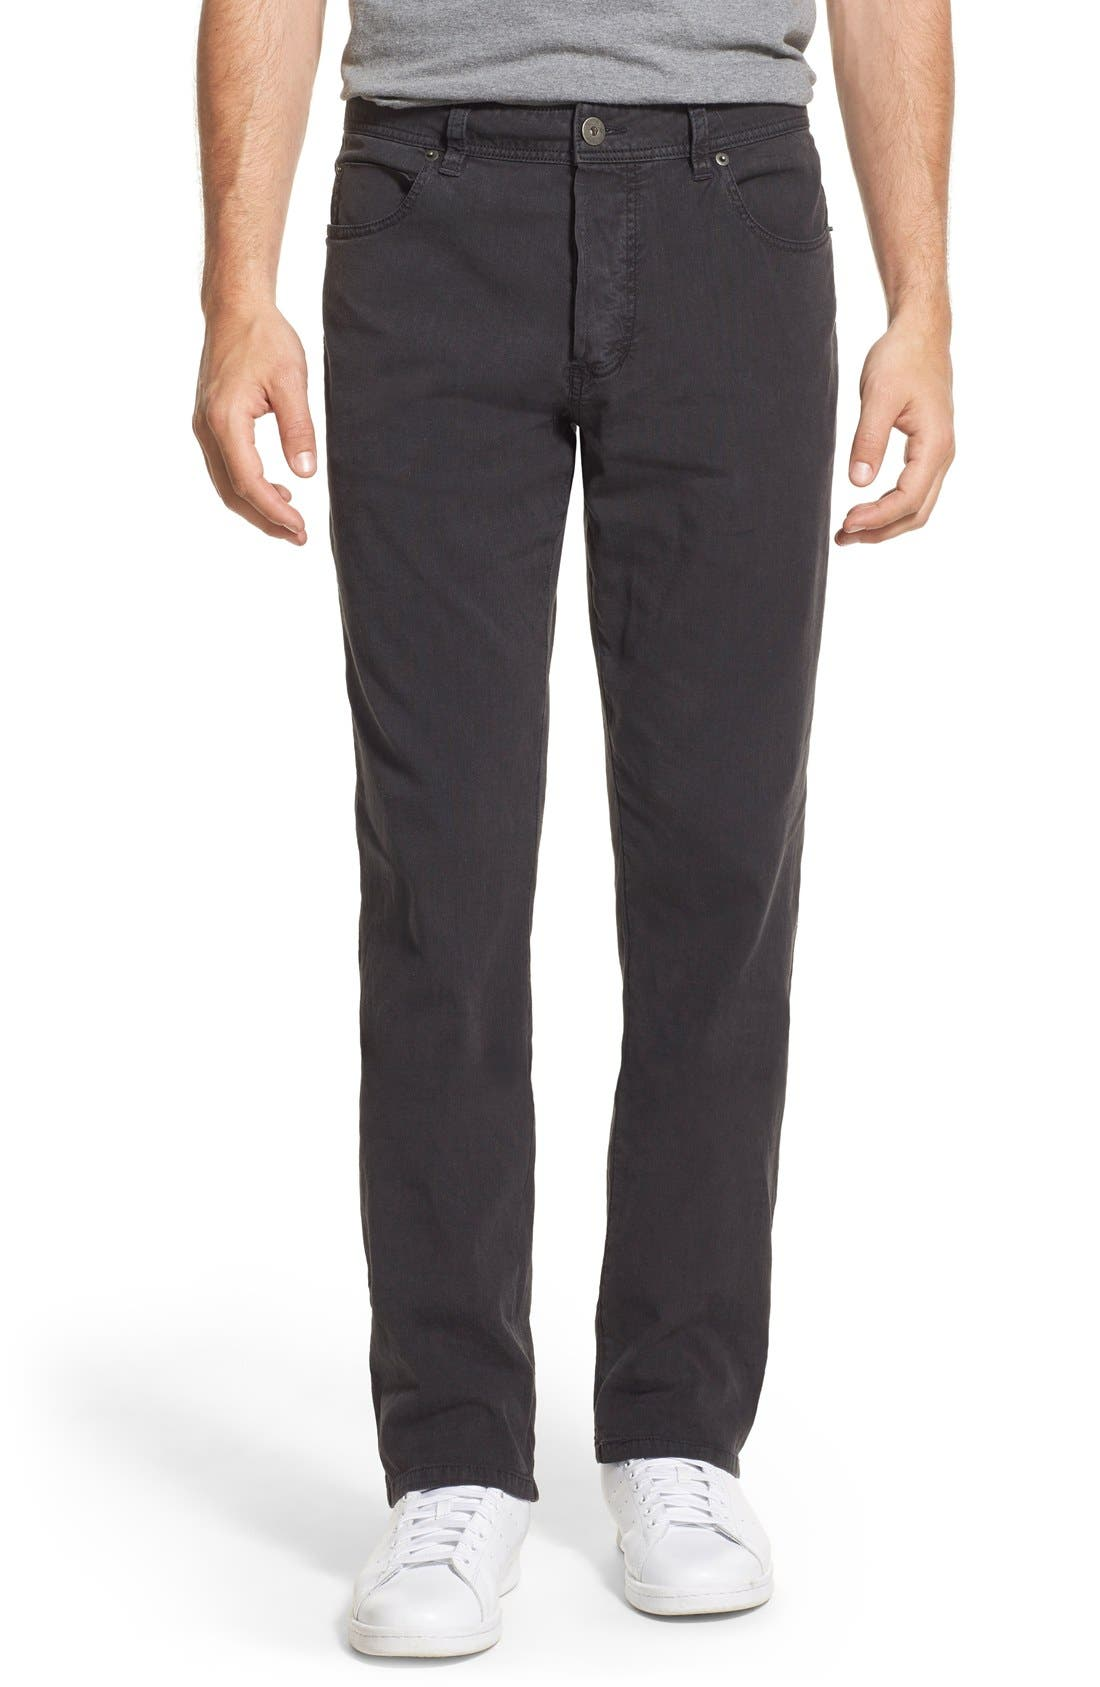 Straight Leg Five-Pocket Pants,                             Main thumbnail 1, color,                             CARBON PIGMENT